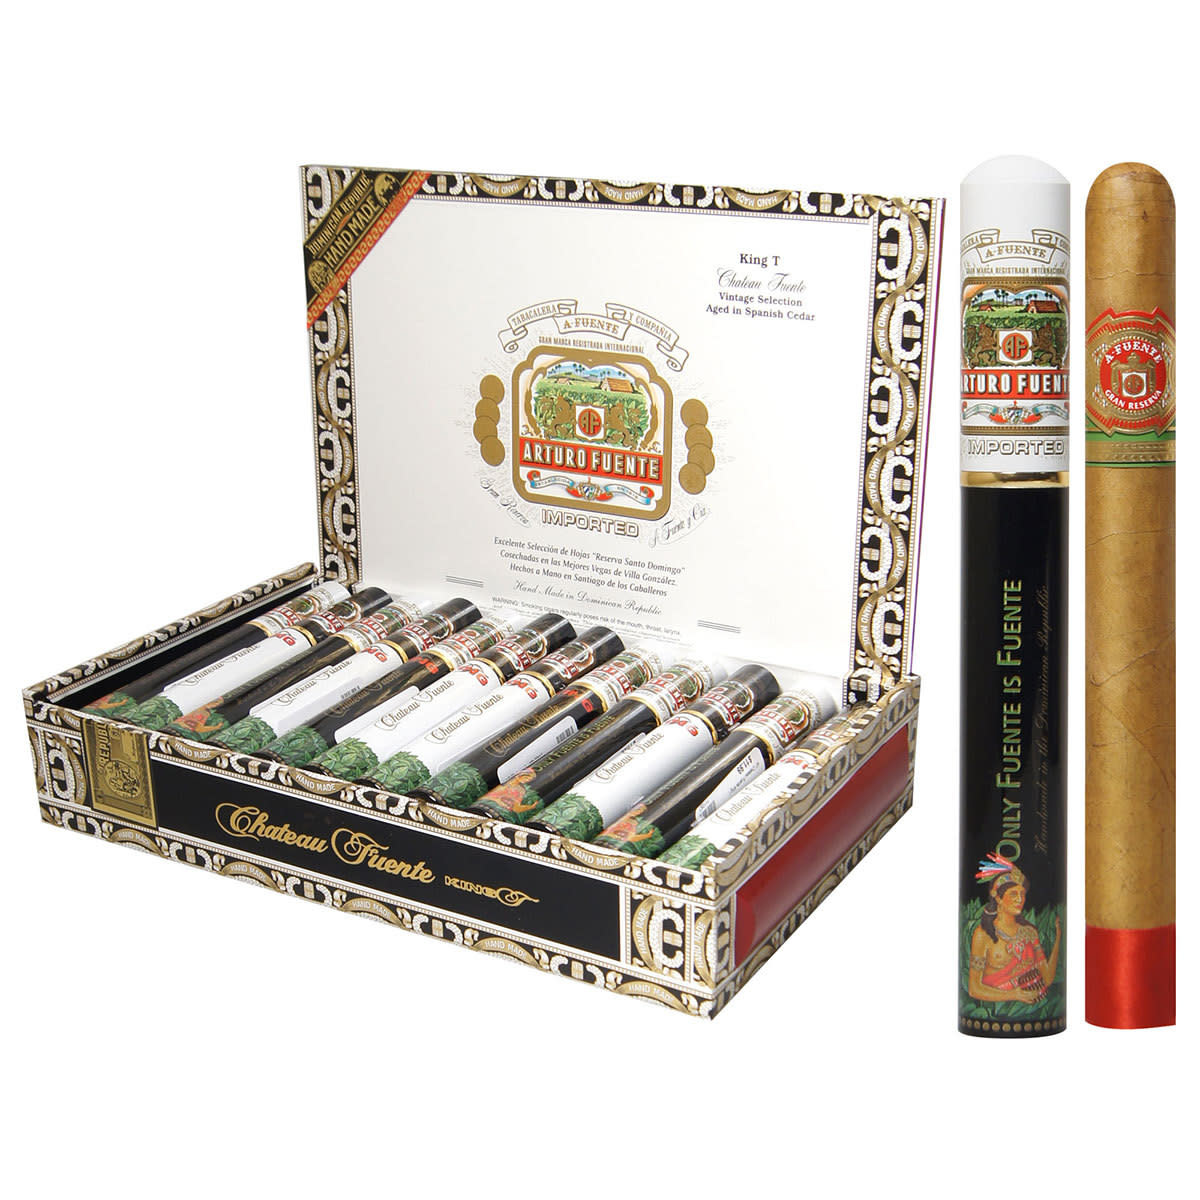 Arturo Fuente AF KING T BLACK NATURAL SINGLE